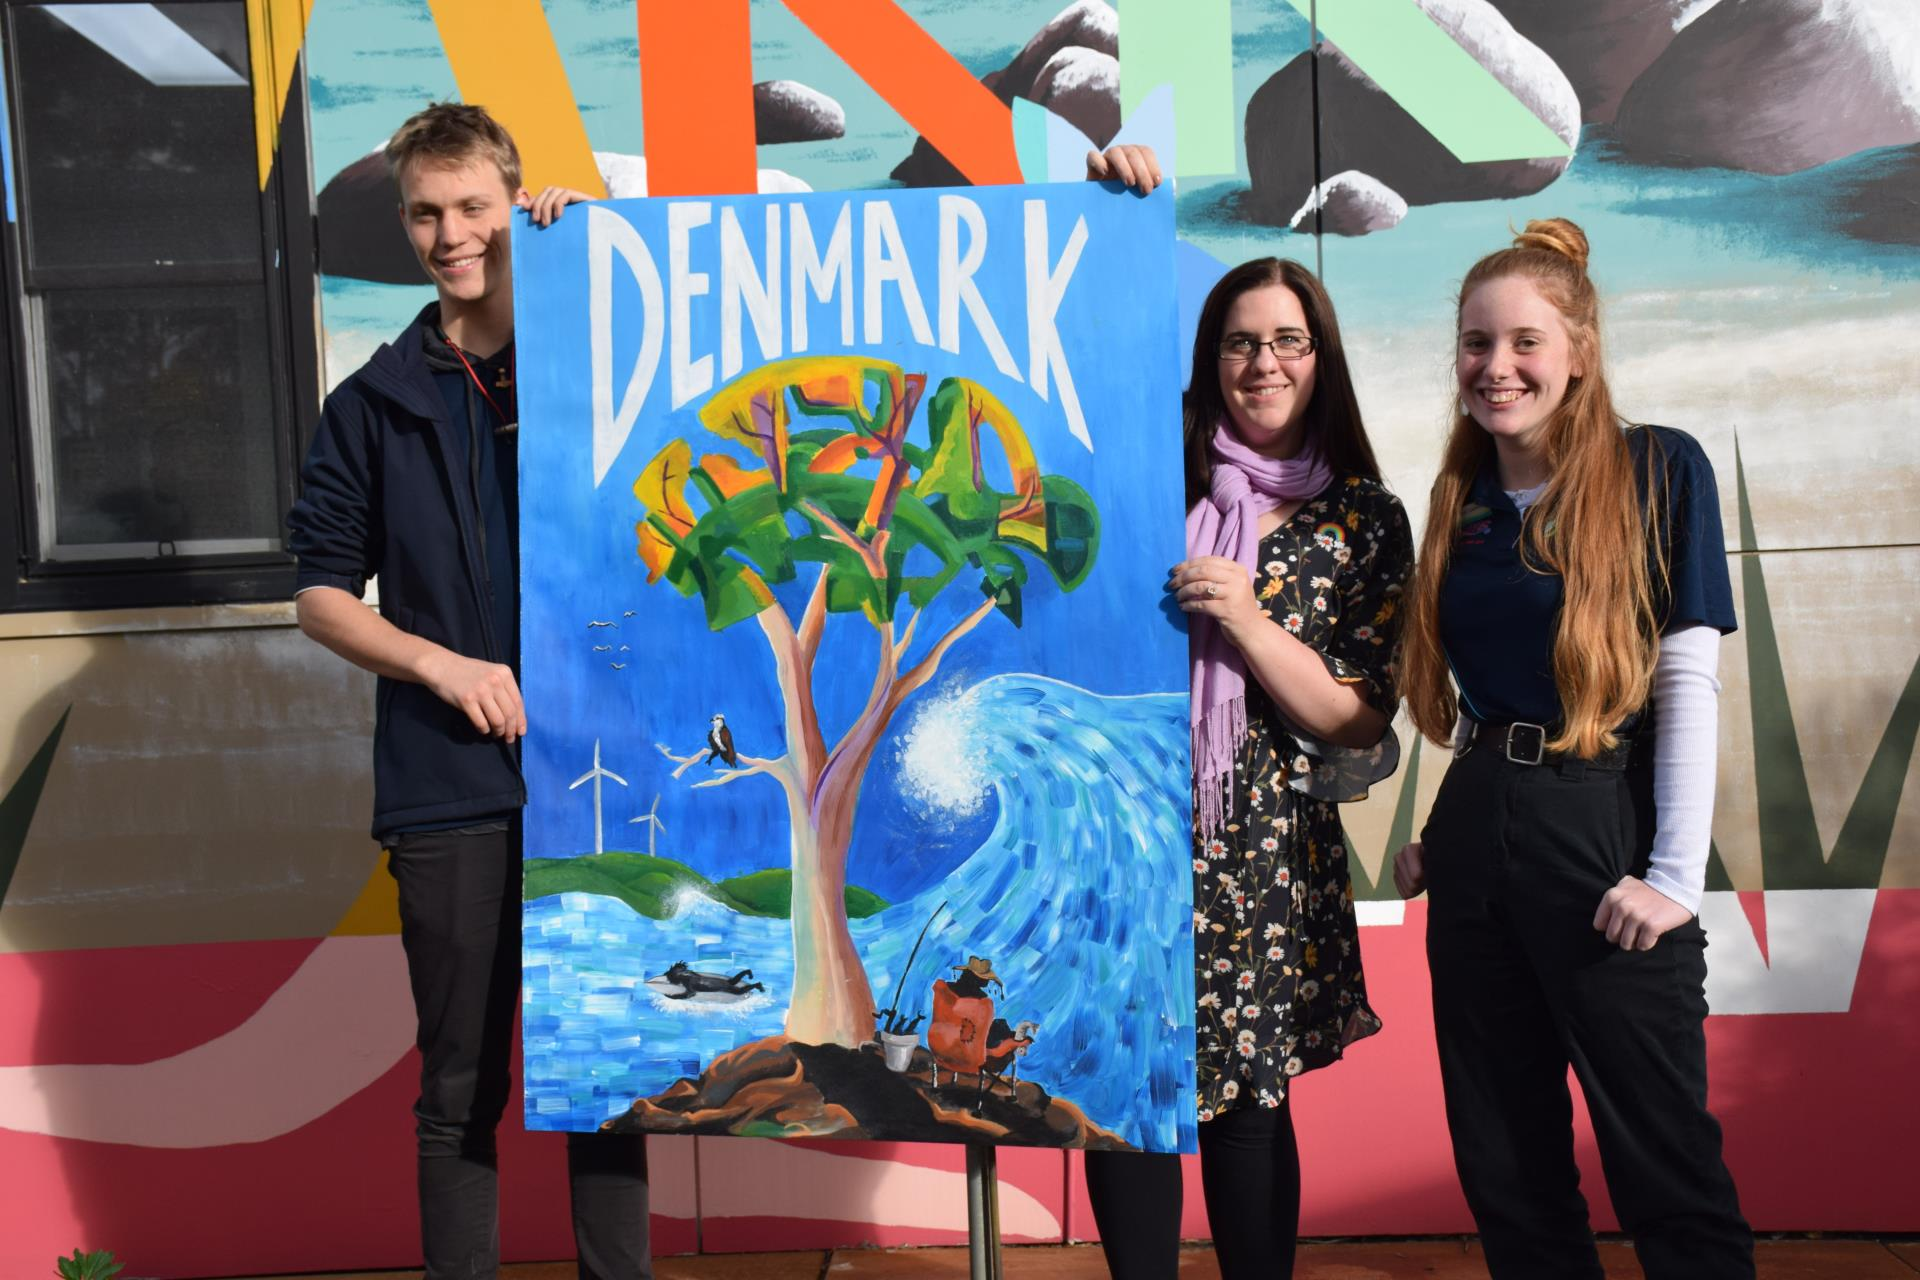 Denmark students' art skills on show at Pixels exhibition